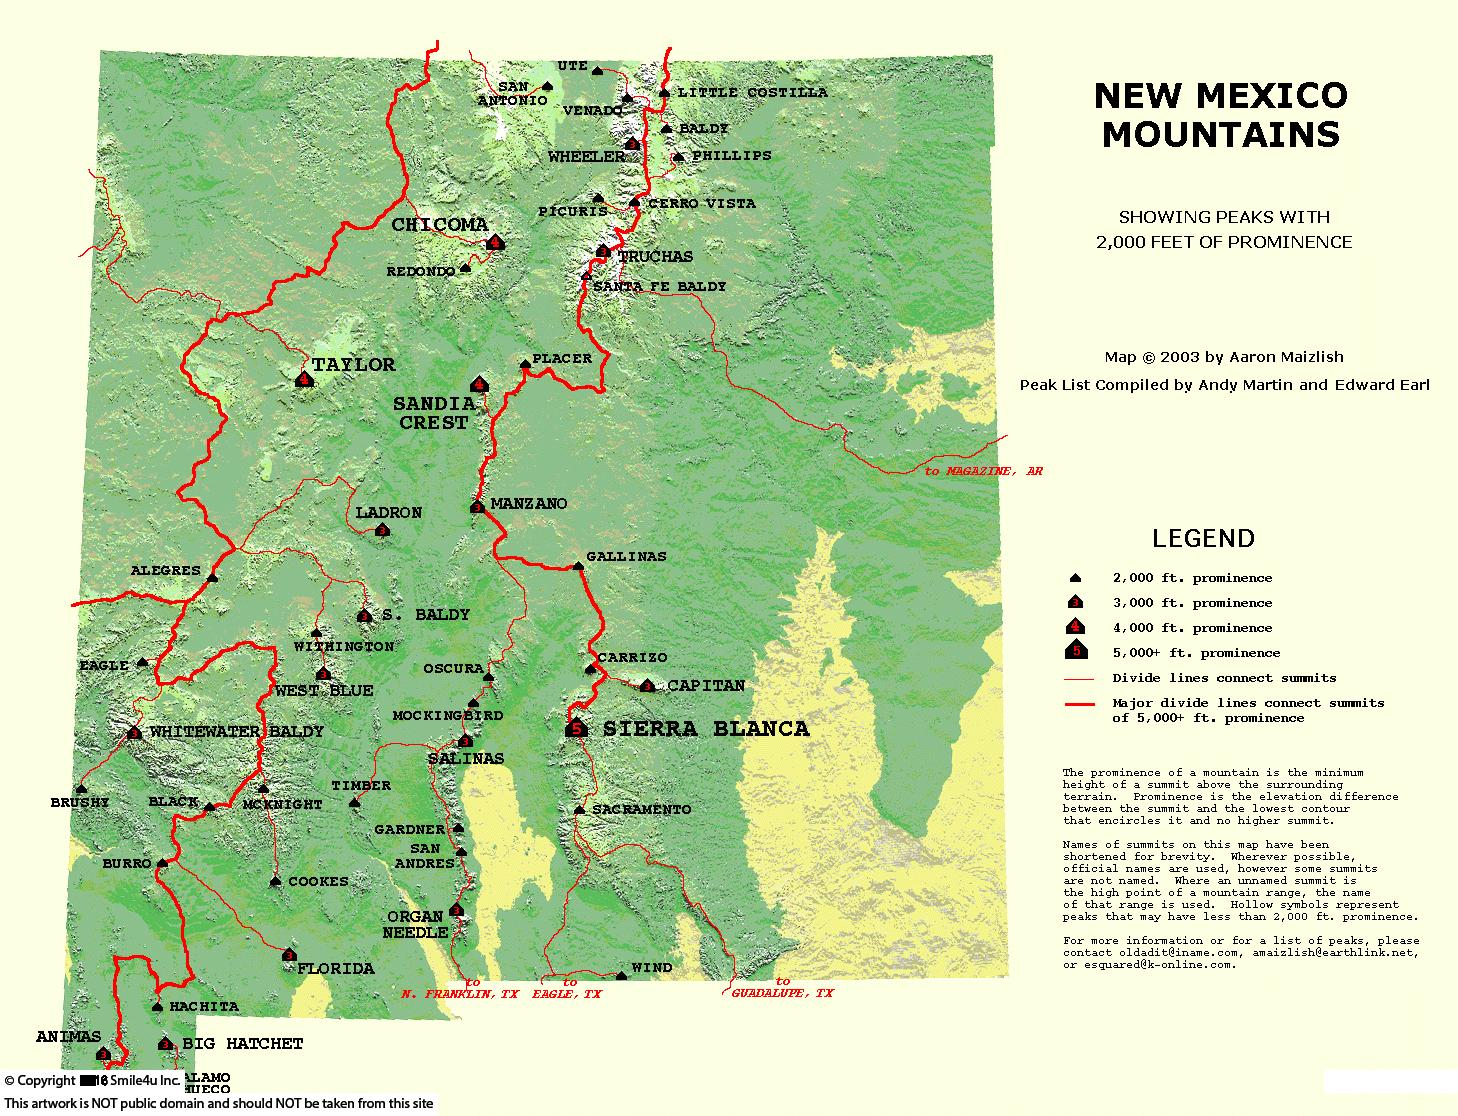 299019_watermarked_newmexicosummits.png